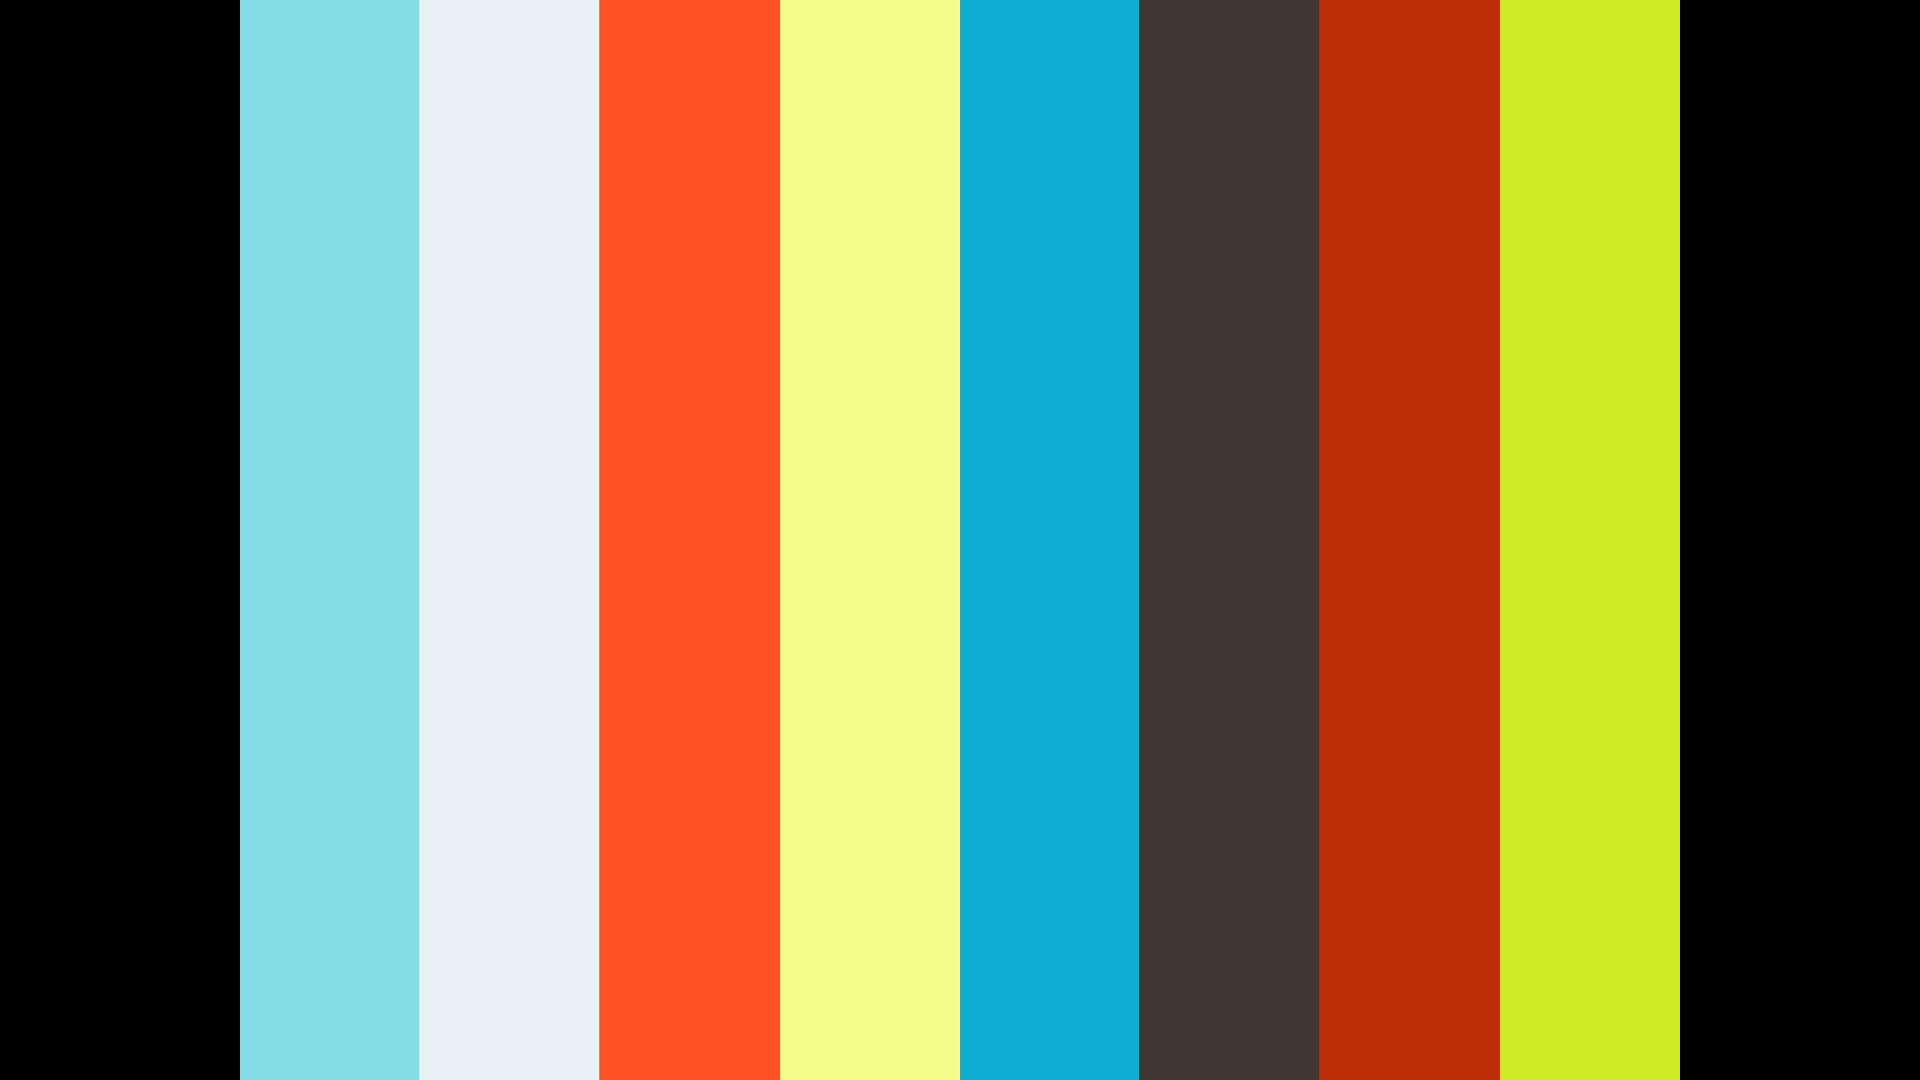 Ethiopianism.tv  # ዲያስፖርውና አርበኛ-ፋኖ ትግግዝ  # Diaspora & Arbegna  Fano Solidarity # 17 May 2020 #15